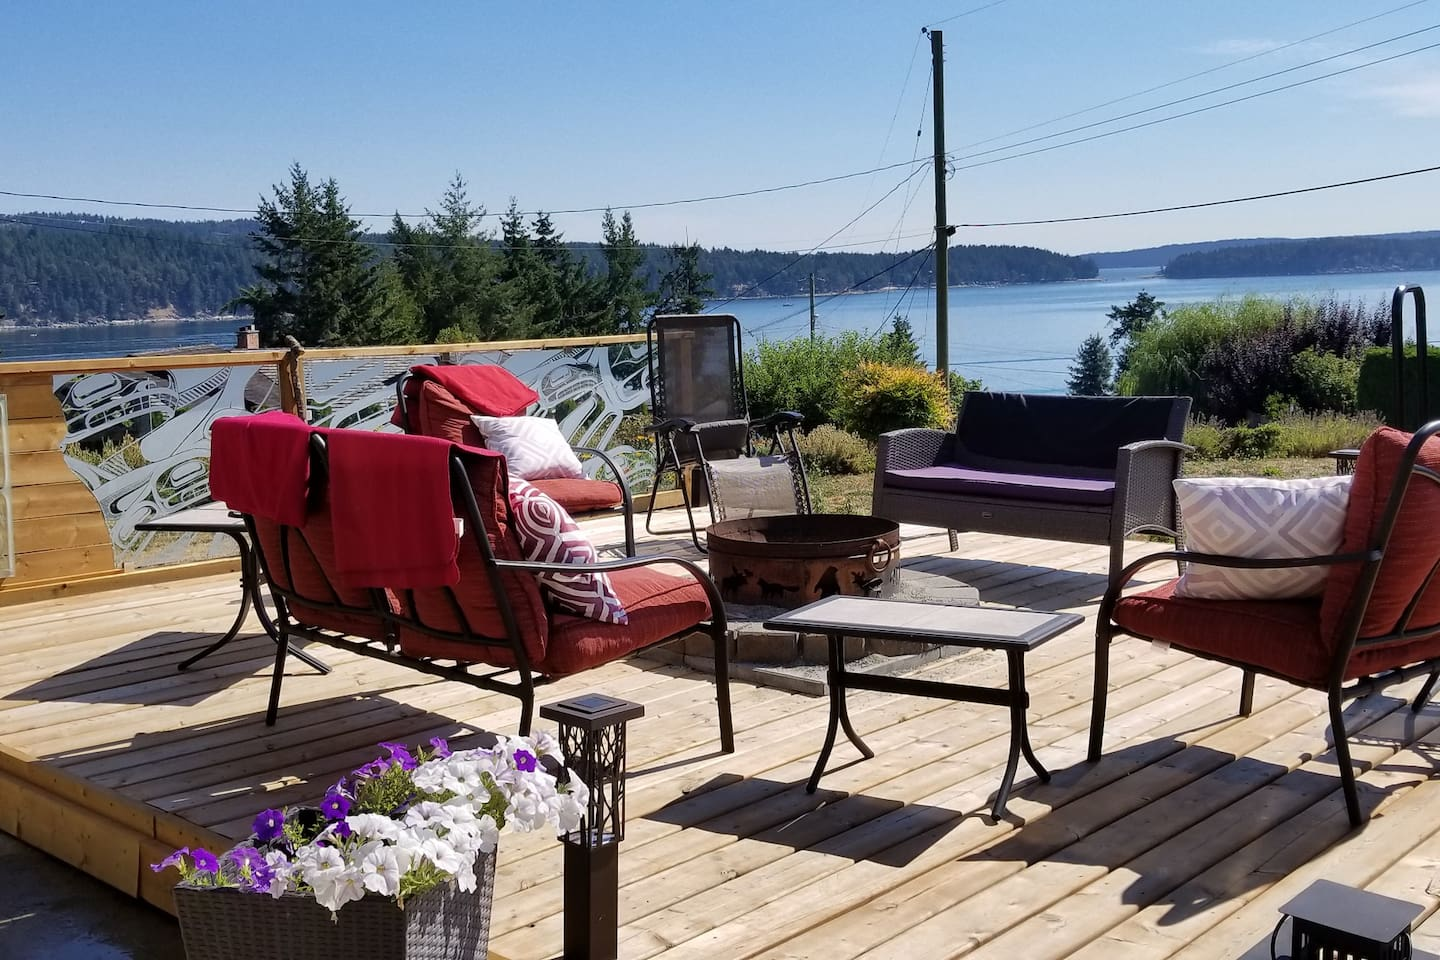 Just if you wanted to sit, relax, read or just take in the view from our front deck. (Fires allowed when permitted)